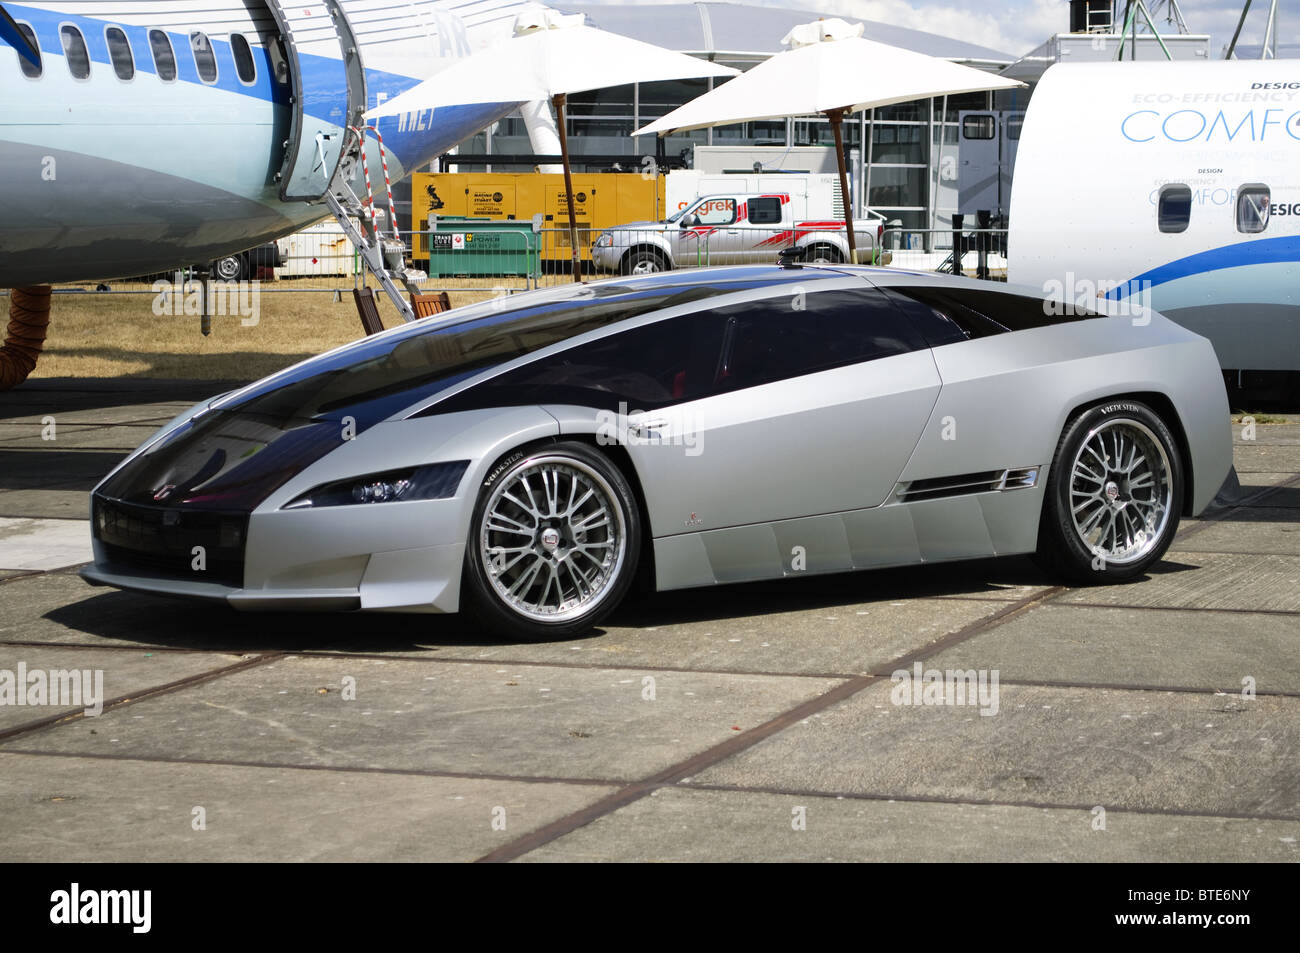 Italdesign Qaranta-hybride powered concept car, conçu par Fabrizio Giugiaro, sur l'affichage à Farnborough Photo Stock